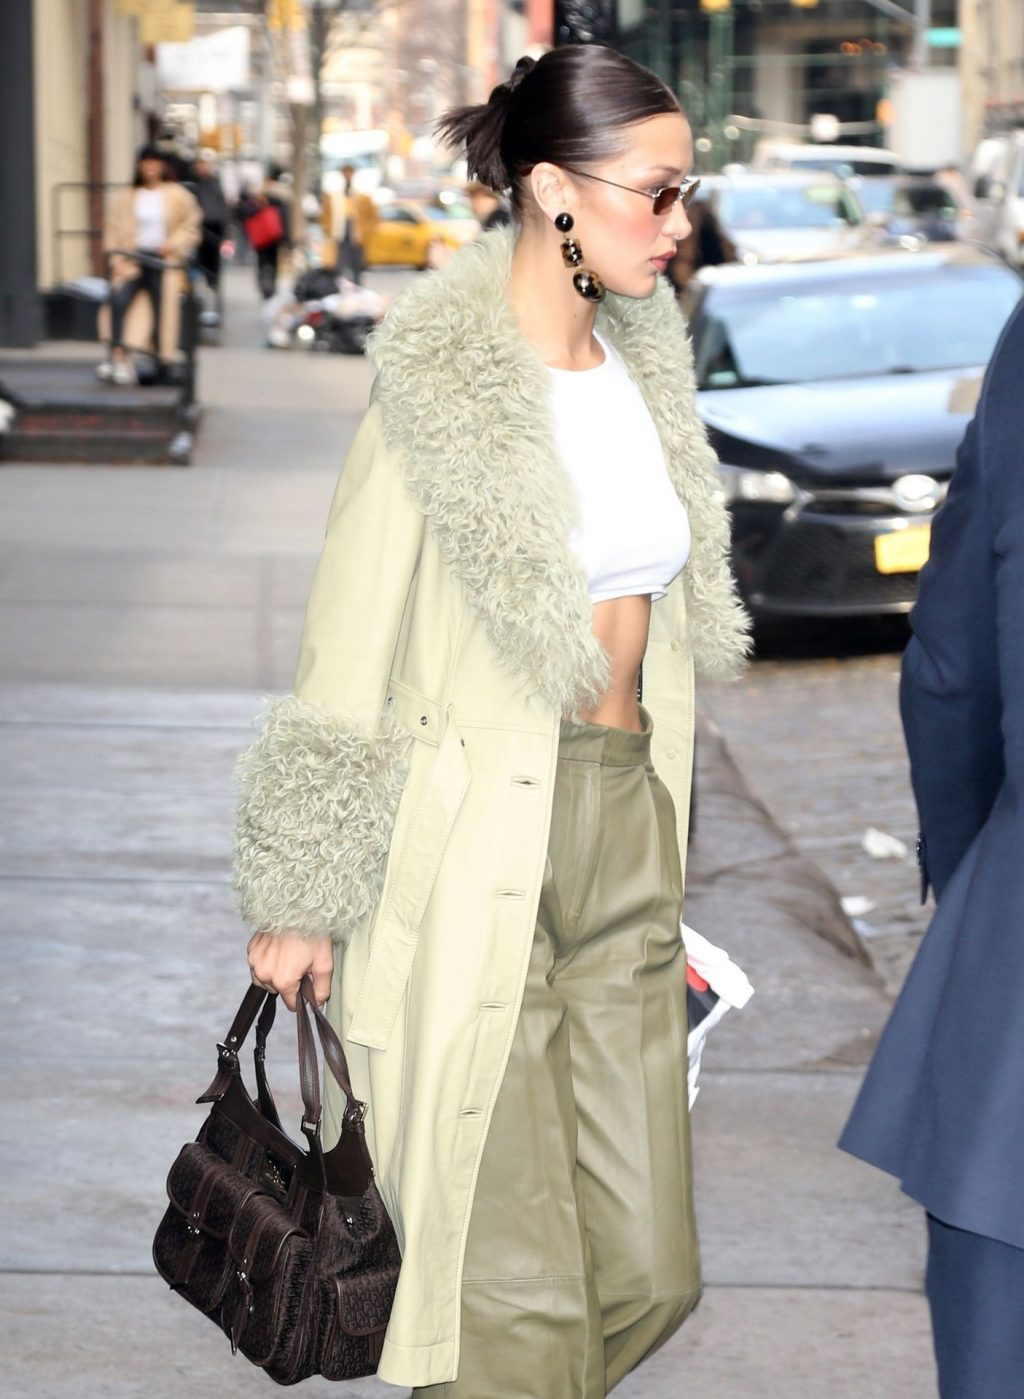 Bella Hadid See through The Fappening Blog 33 1024x1399 - Braless Bella Hadid Arrives at the Park Avenue Armory for the Marc Jacobs Fashion Show (59 Photos)